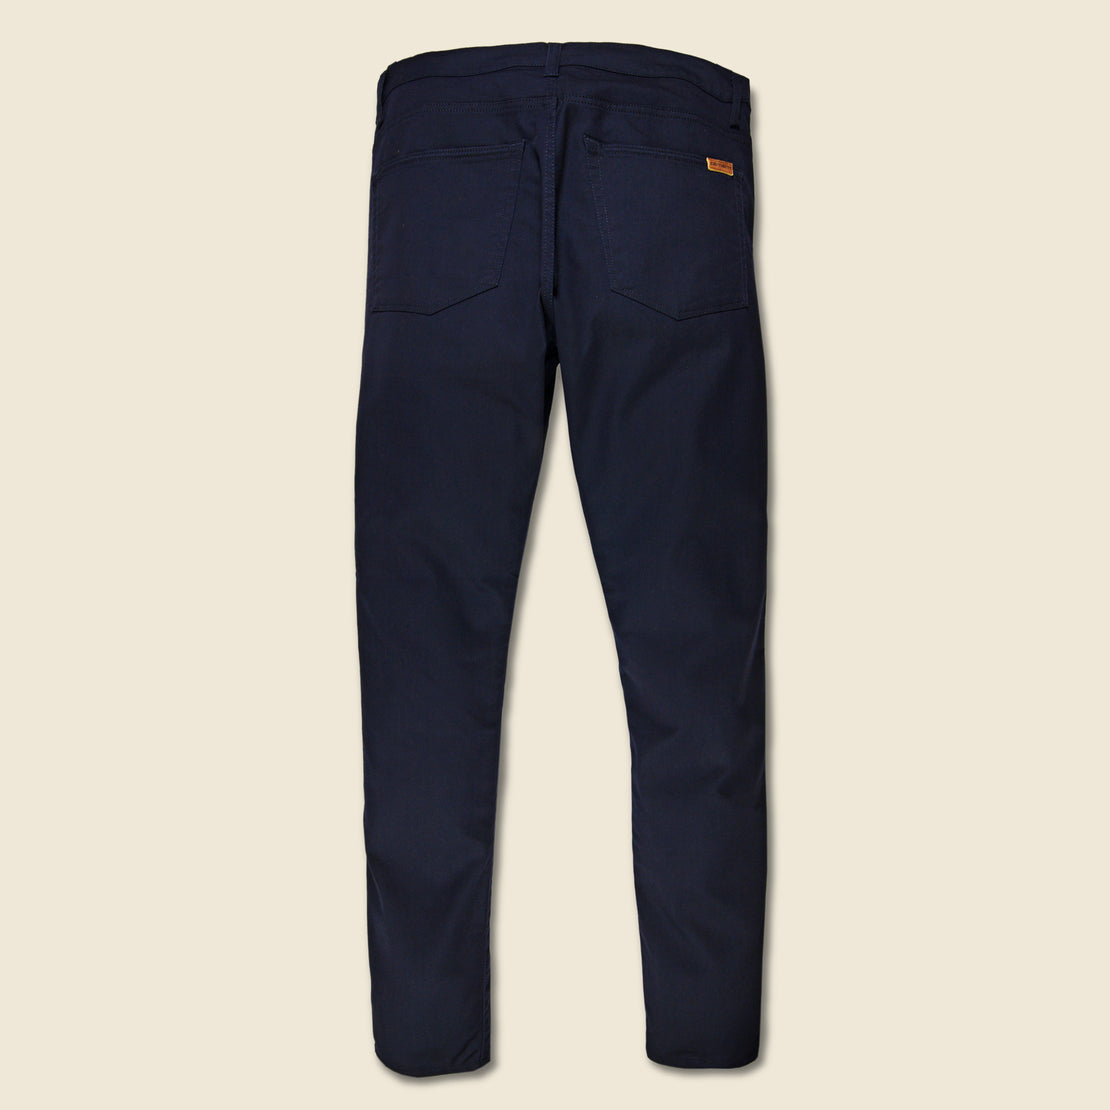 Vicious Pant - Dark Navy - Carhartt WIP - STAG Provisions - Pants - Twill